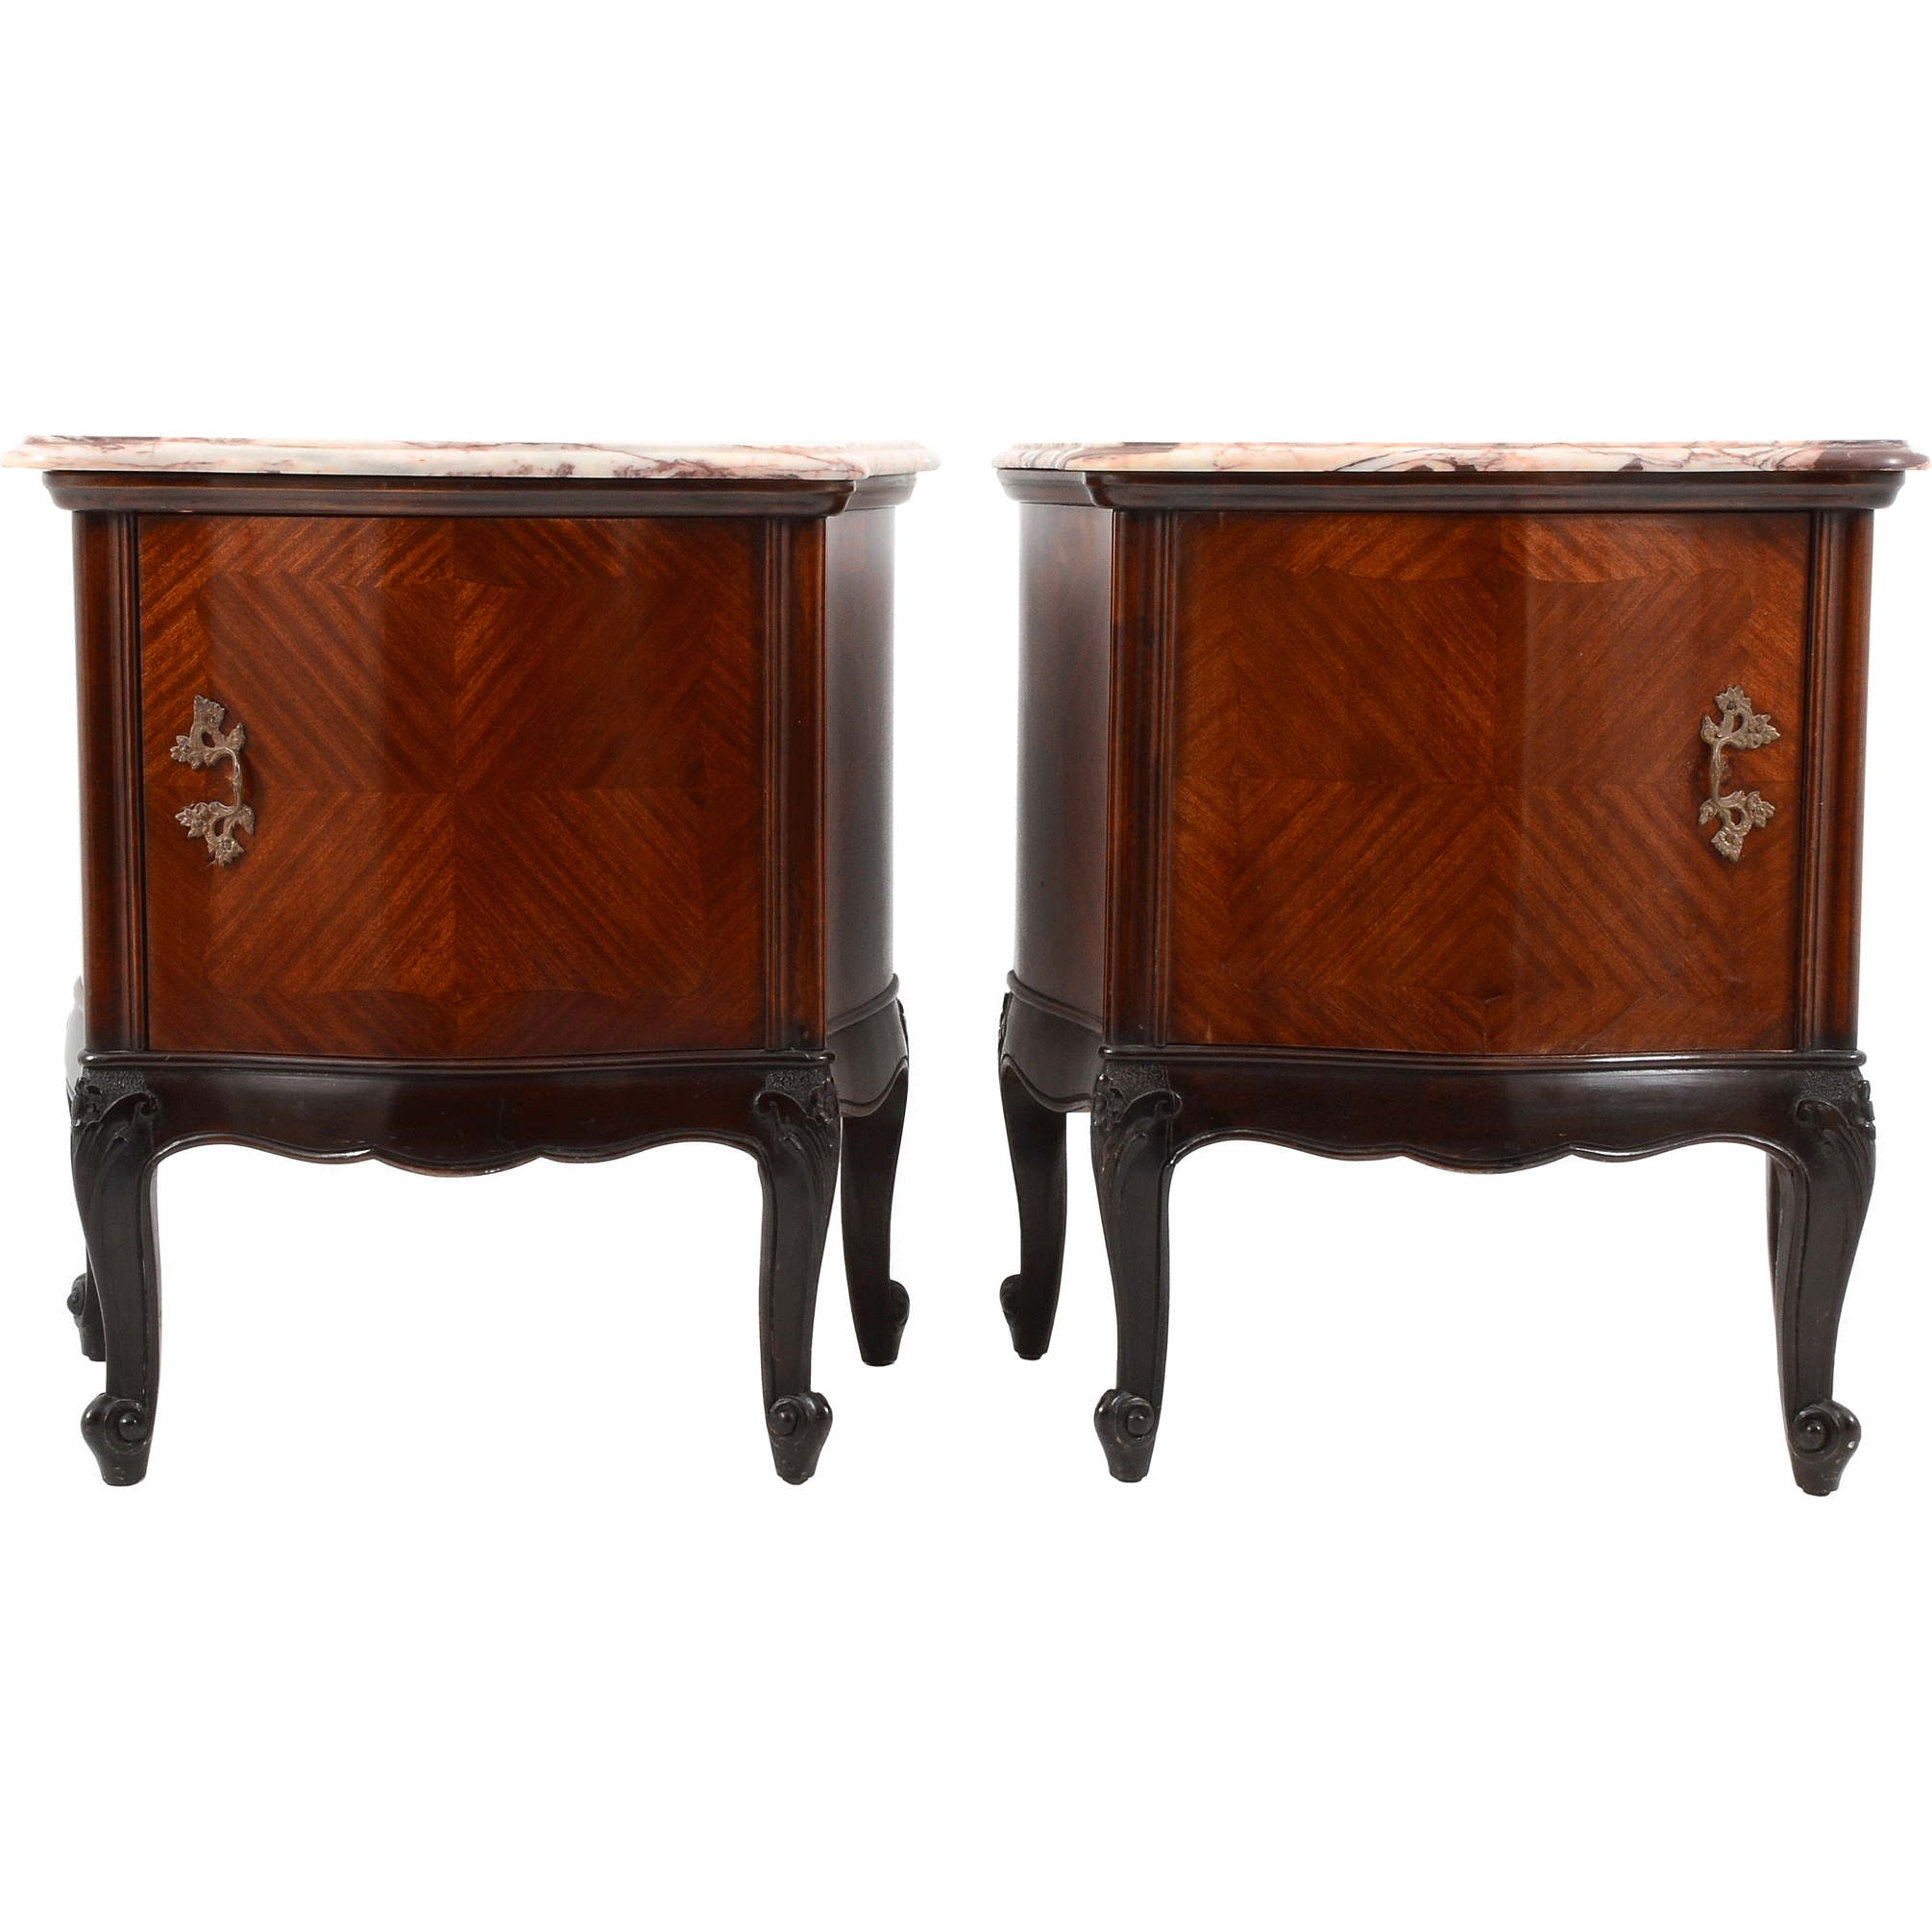 European Pair of Mahogany Nightstands